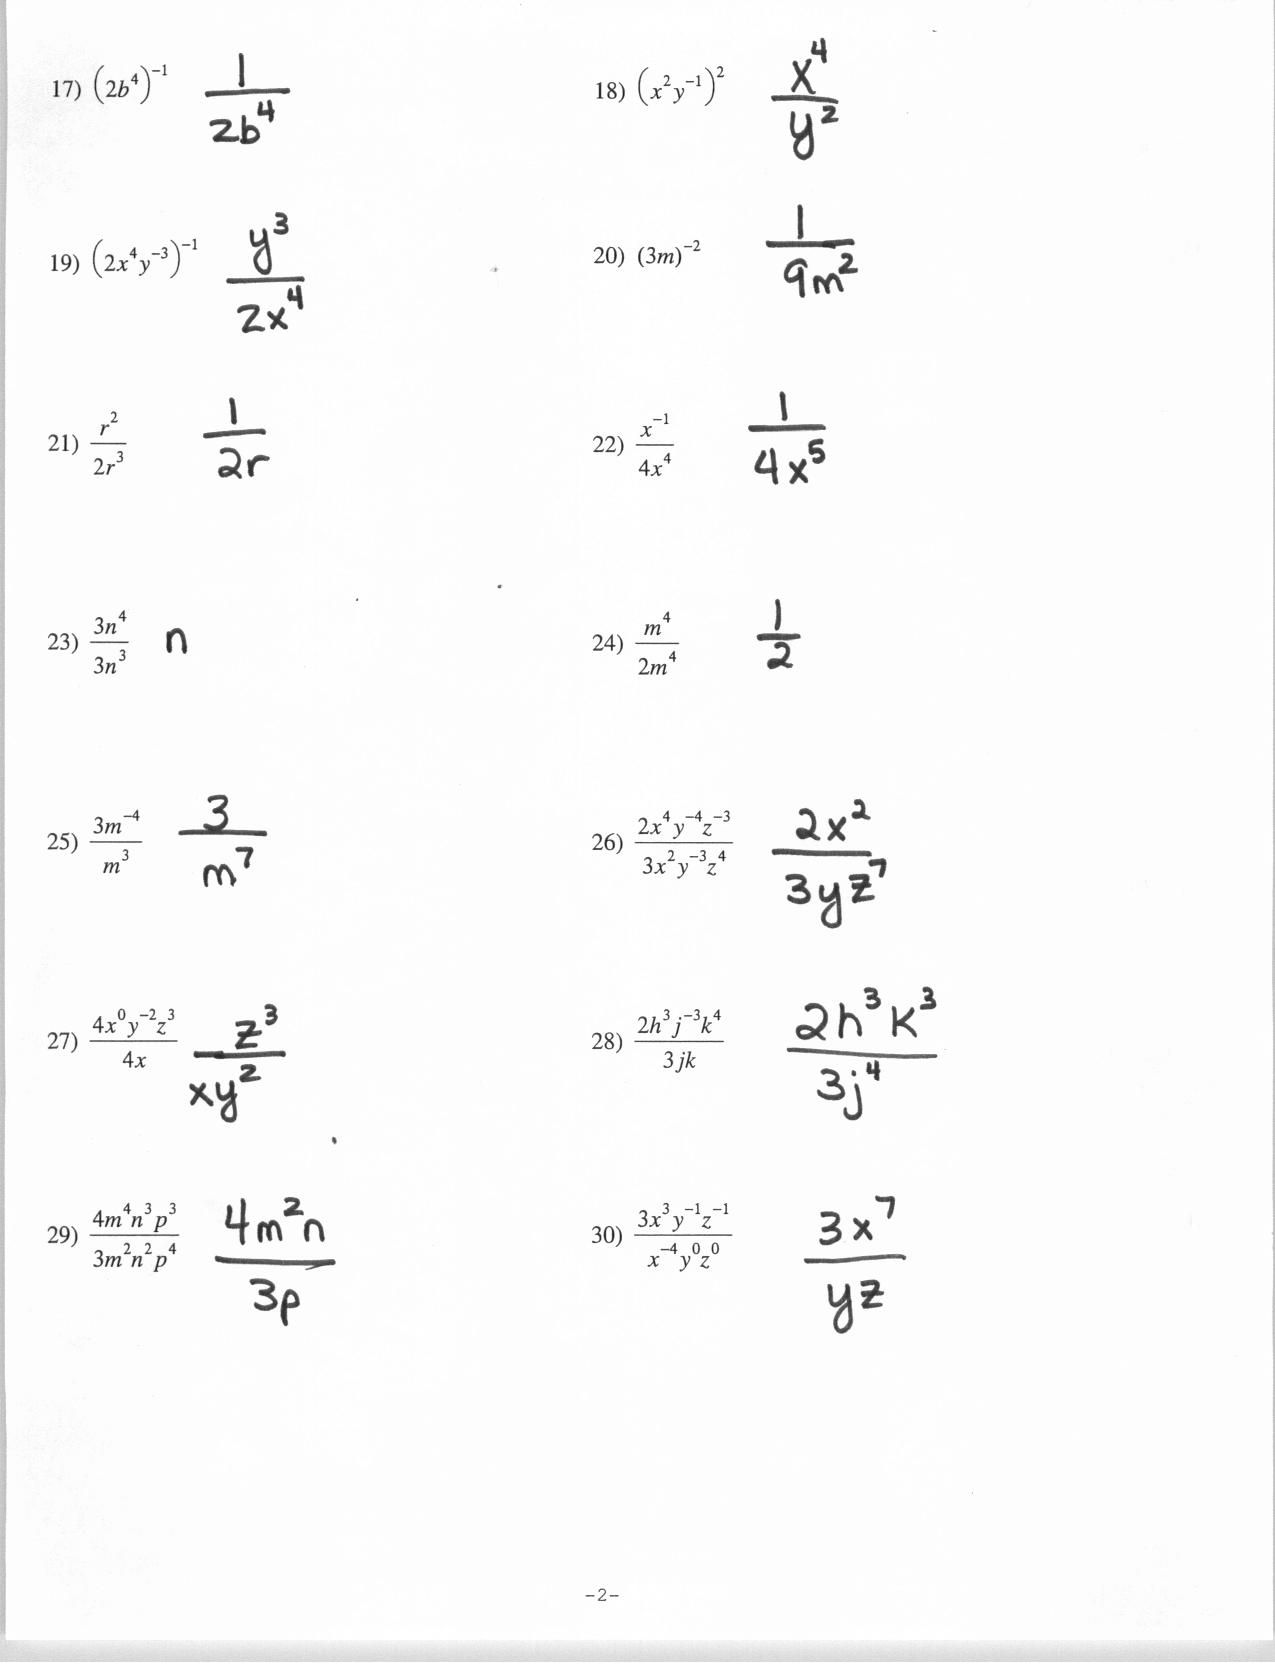 Free Worksheet Exponents Worksheets With Answers exponent rules worksheet abitlikethis worksheet